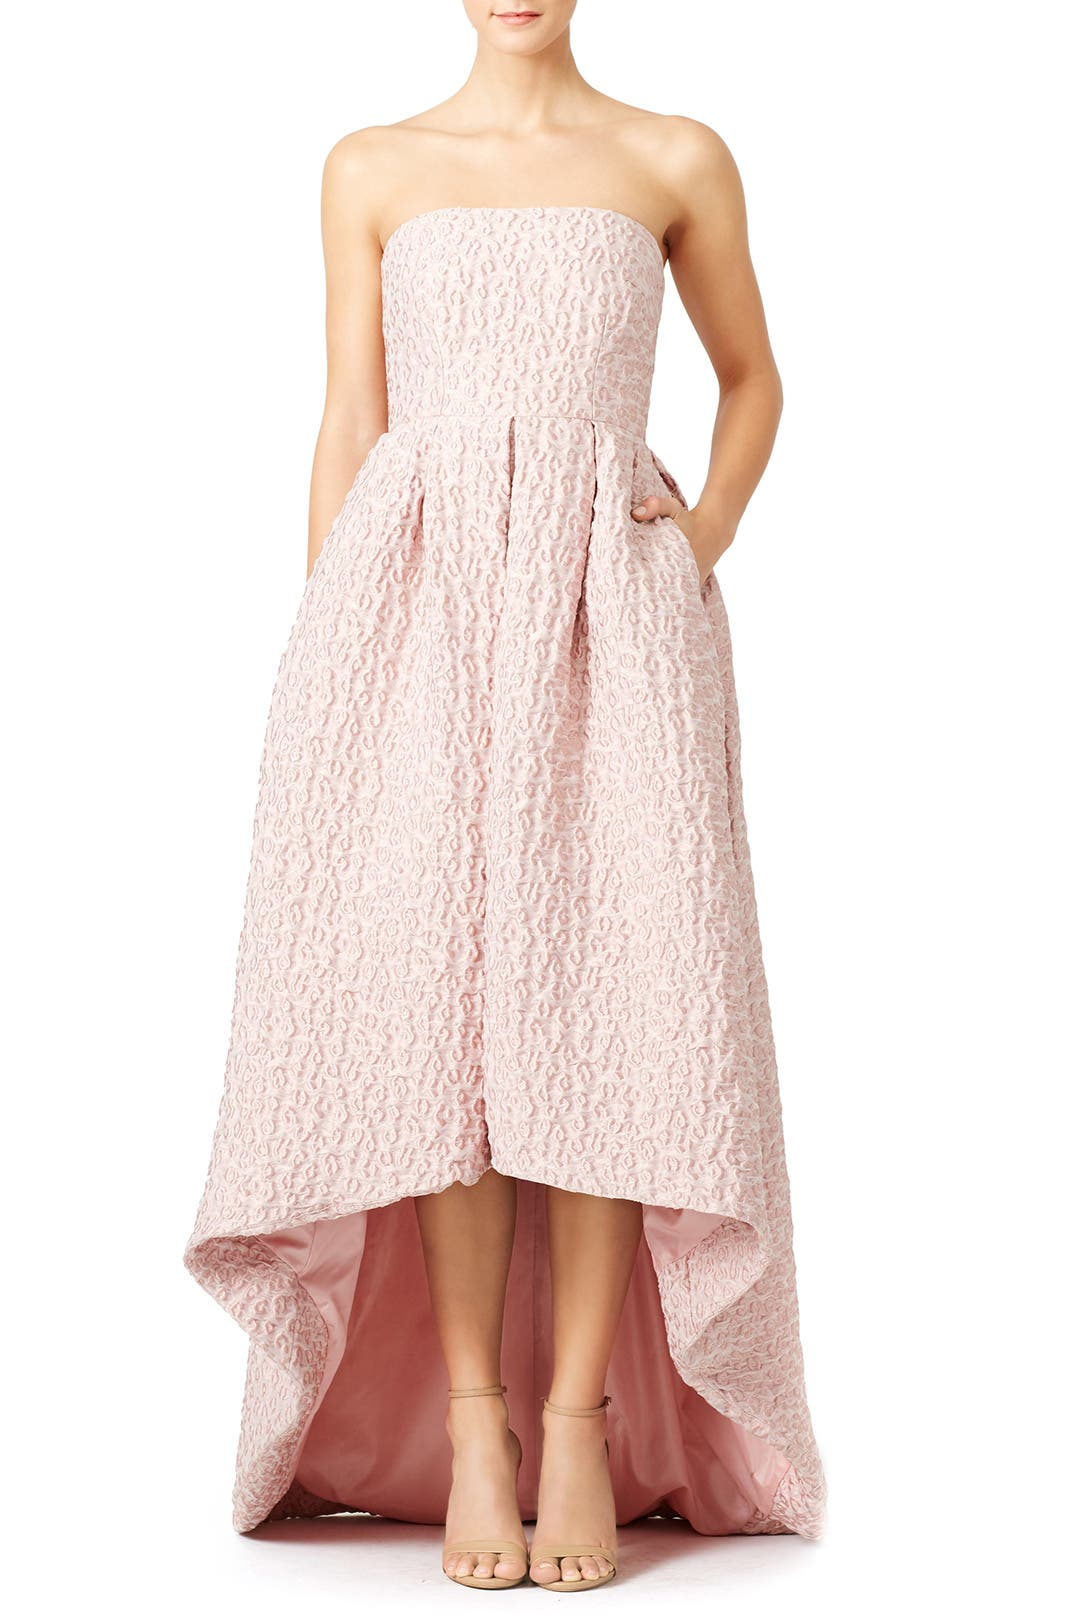 7f1e9169a8f Dresses  Brand Cynthia Rowley Great selection and prices for Wedding ...